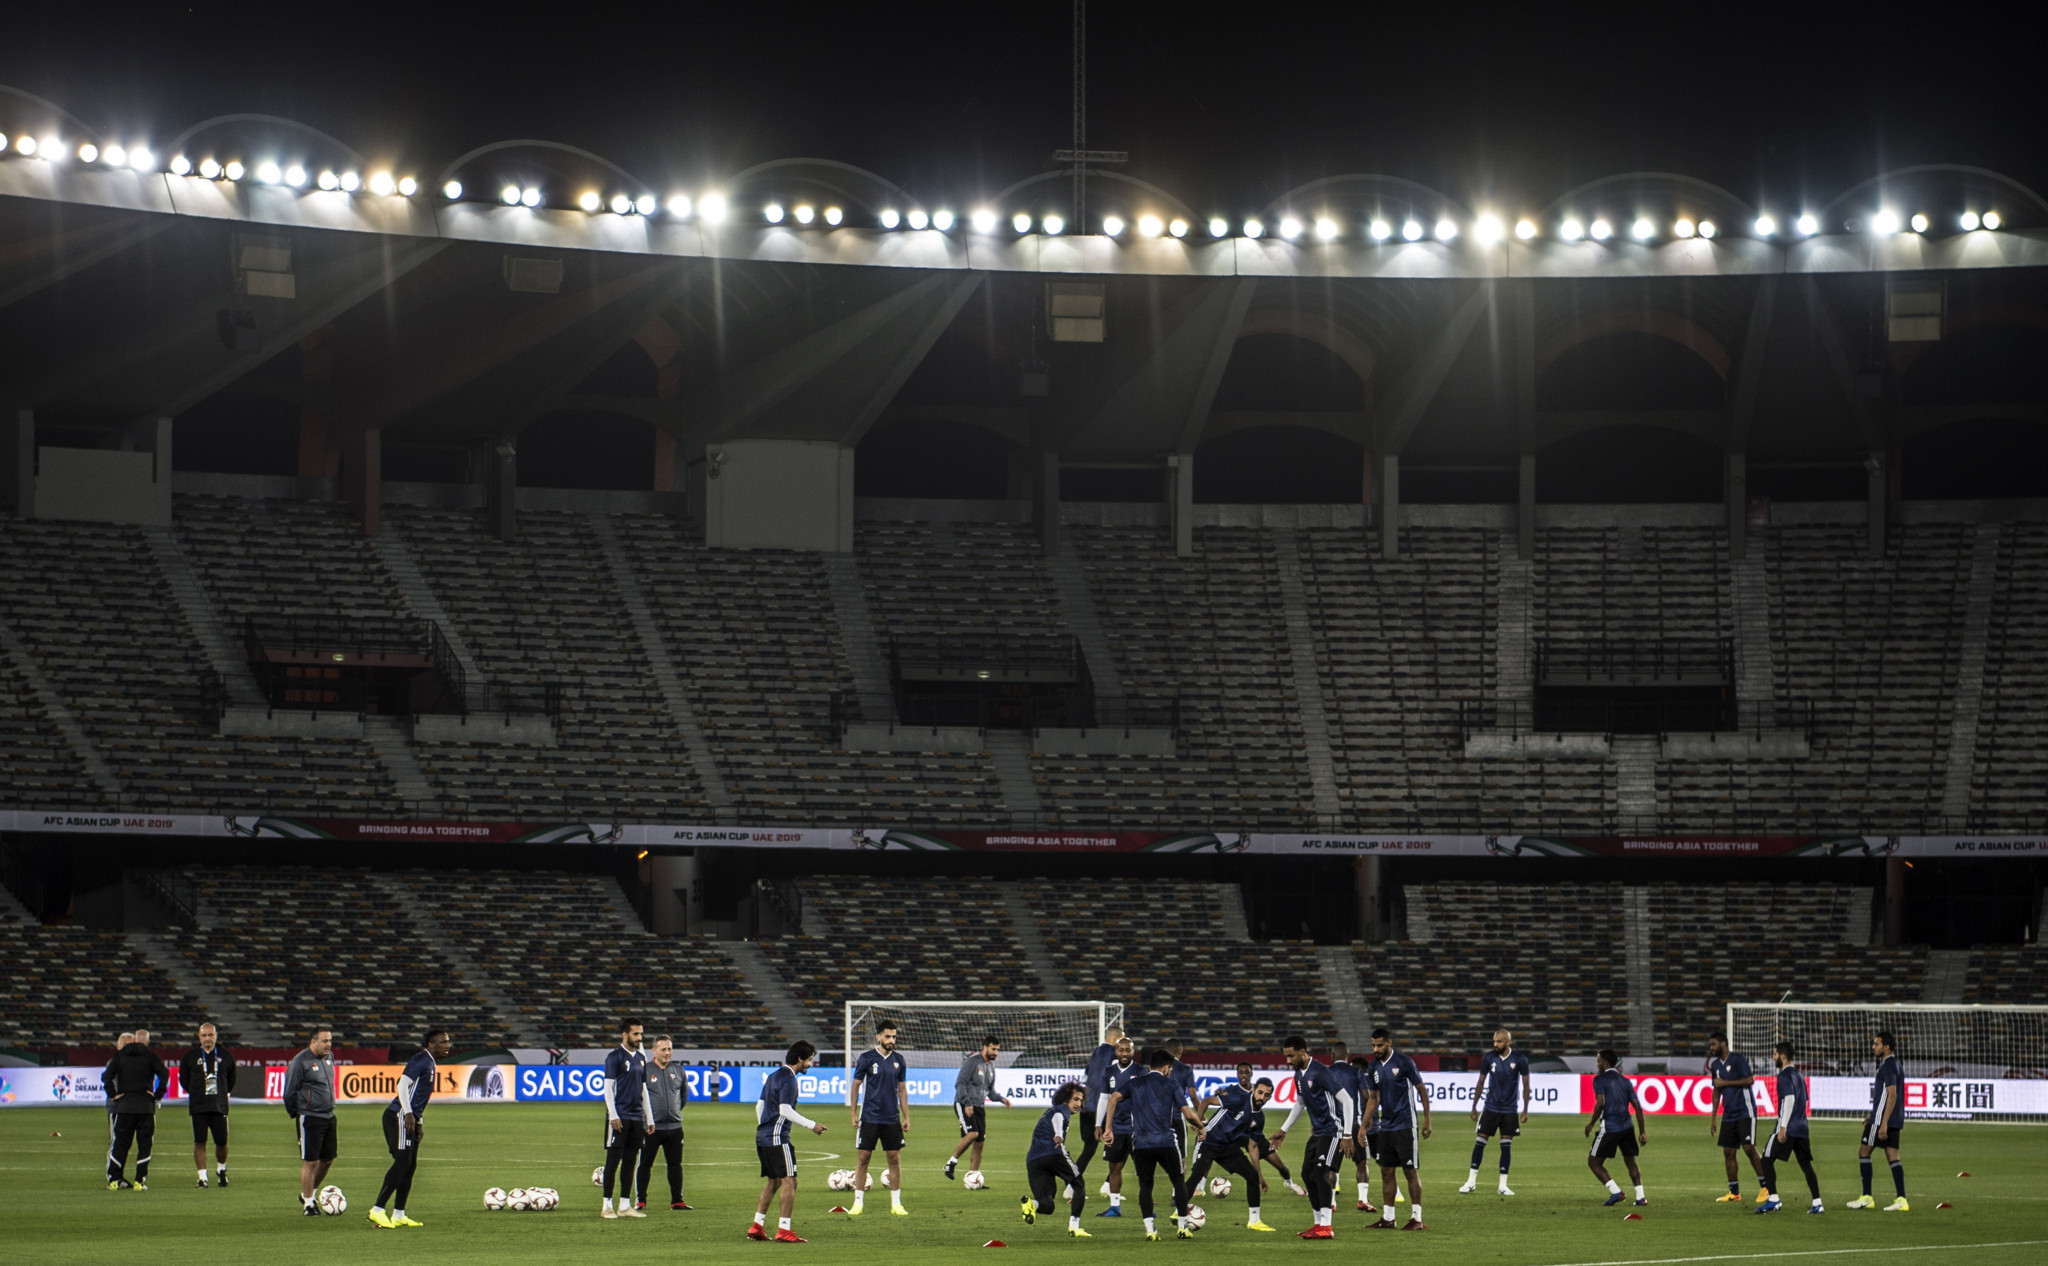 UAE prepare to kick off against Bahrain in opening game of AFC Asian Cup